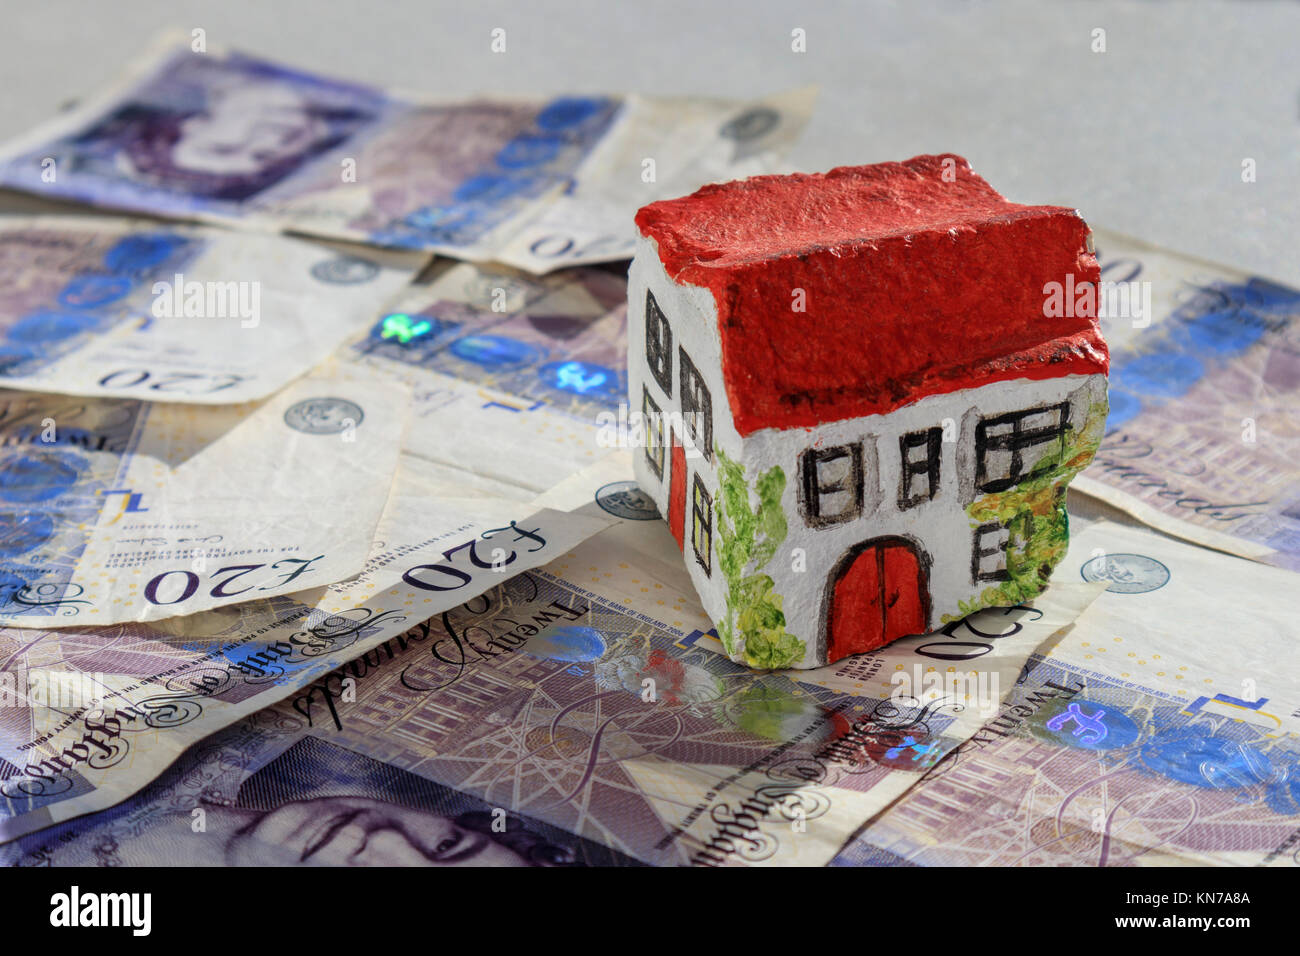 Hand painted stone house sitting on twenty pound notes British currency suggesting savings on stamp duty - Stock Image